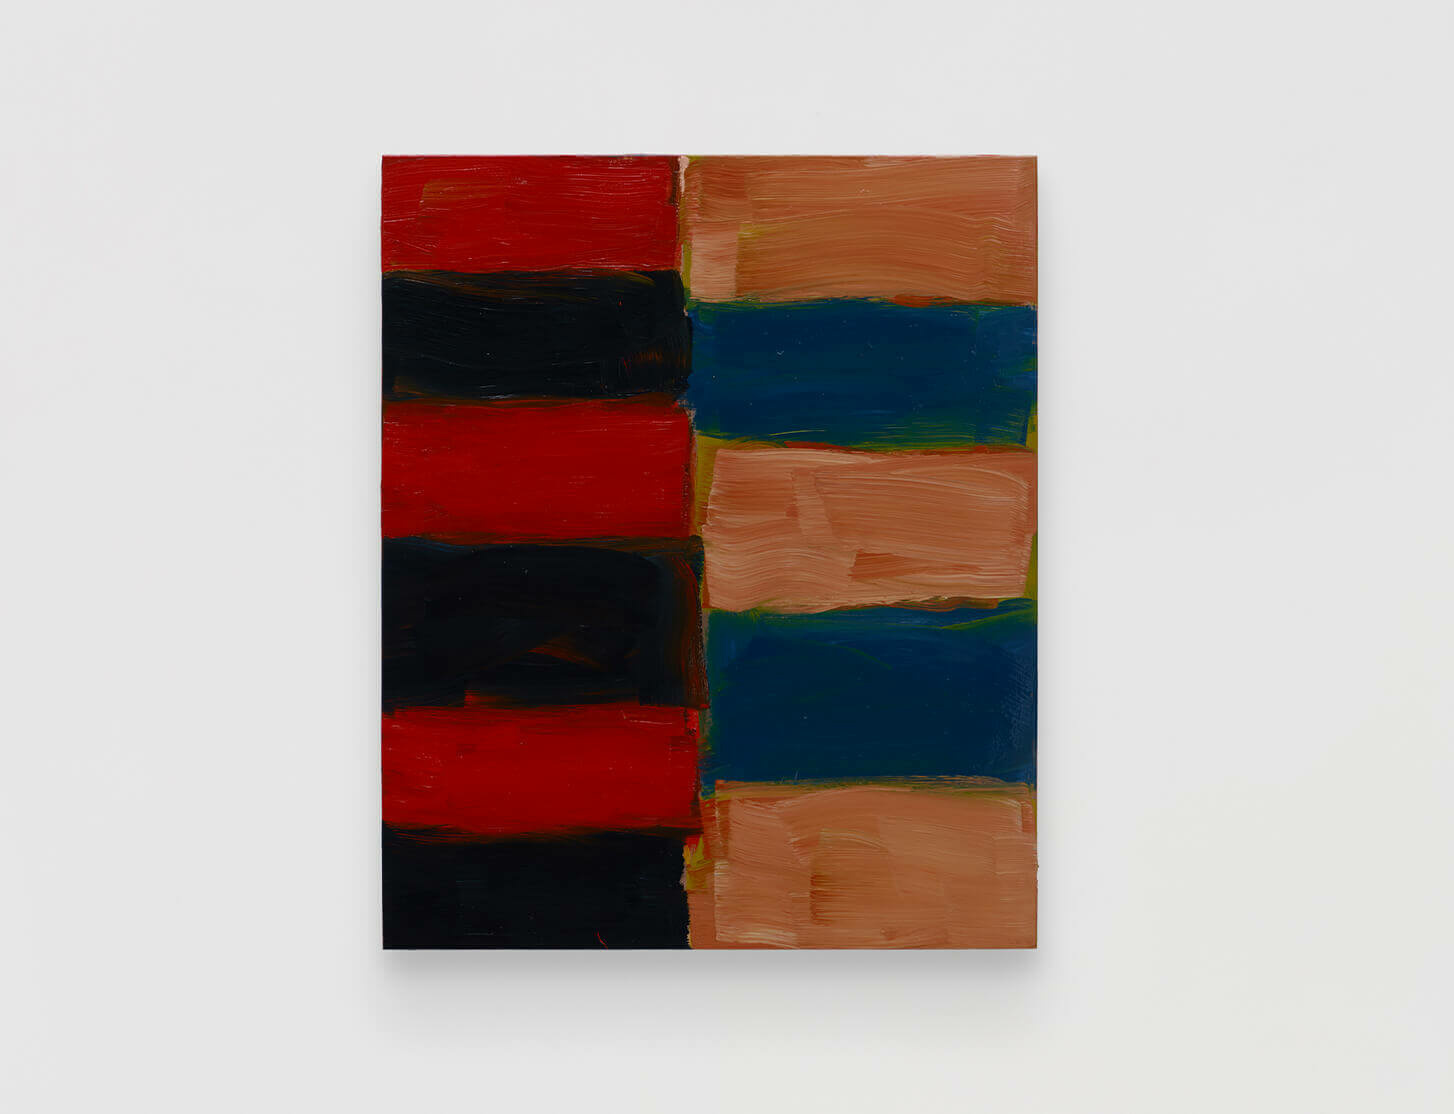 Sean Scully at Lisson Gallery in East Hampton